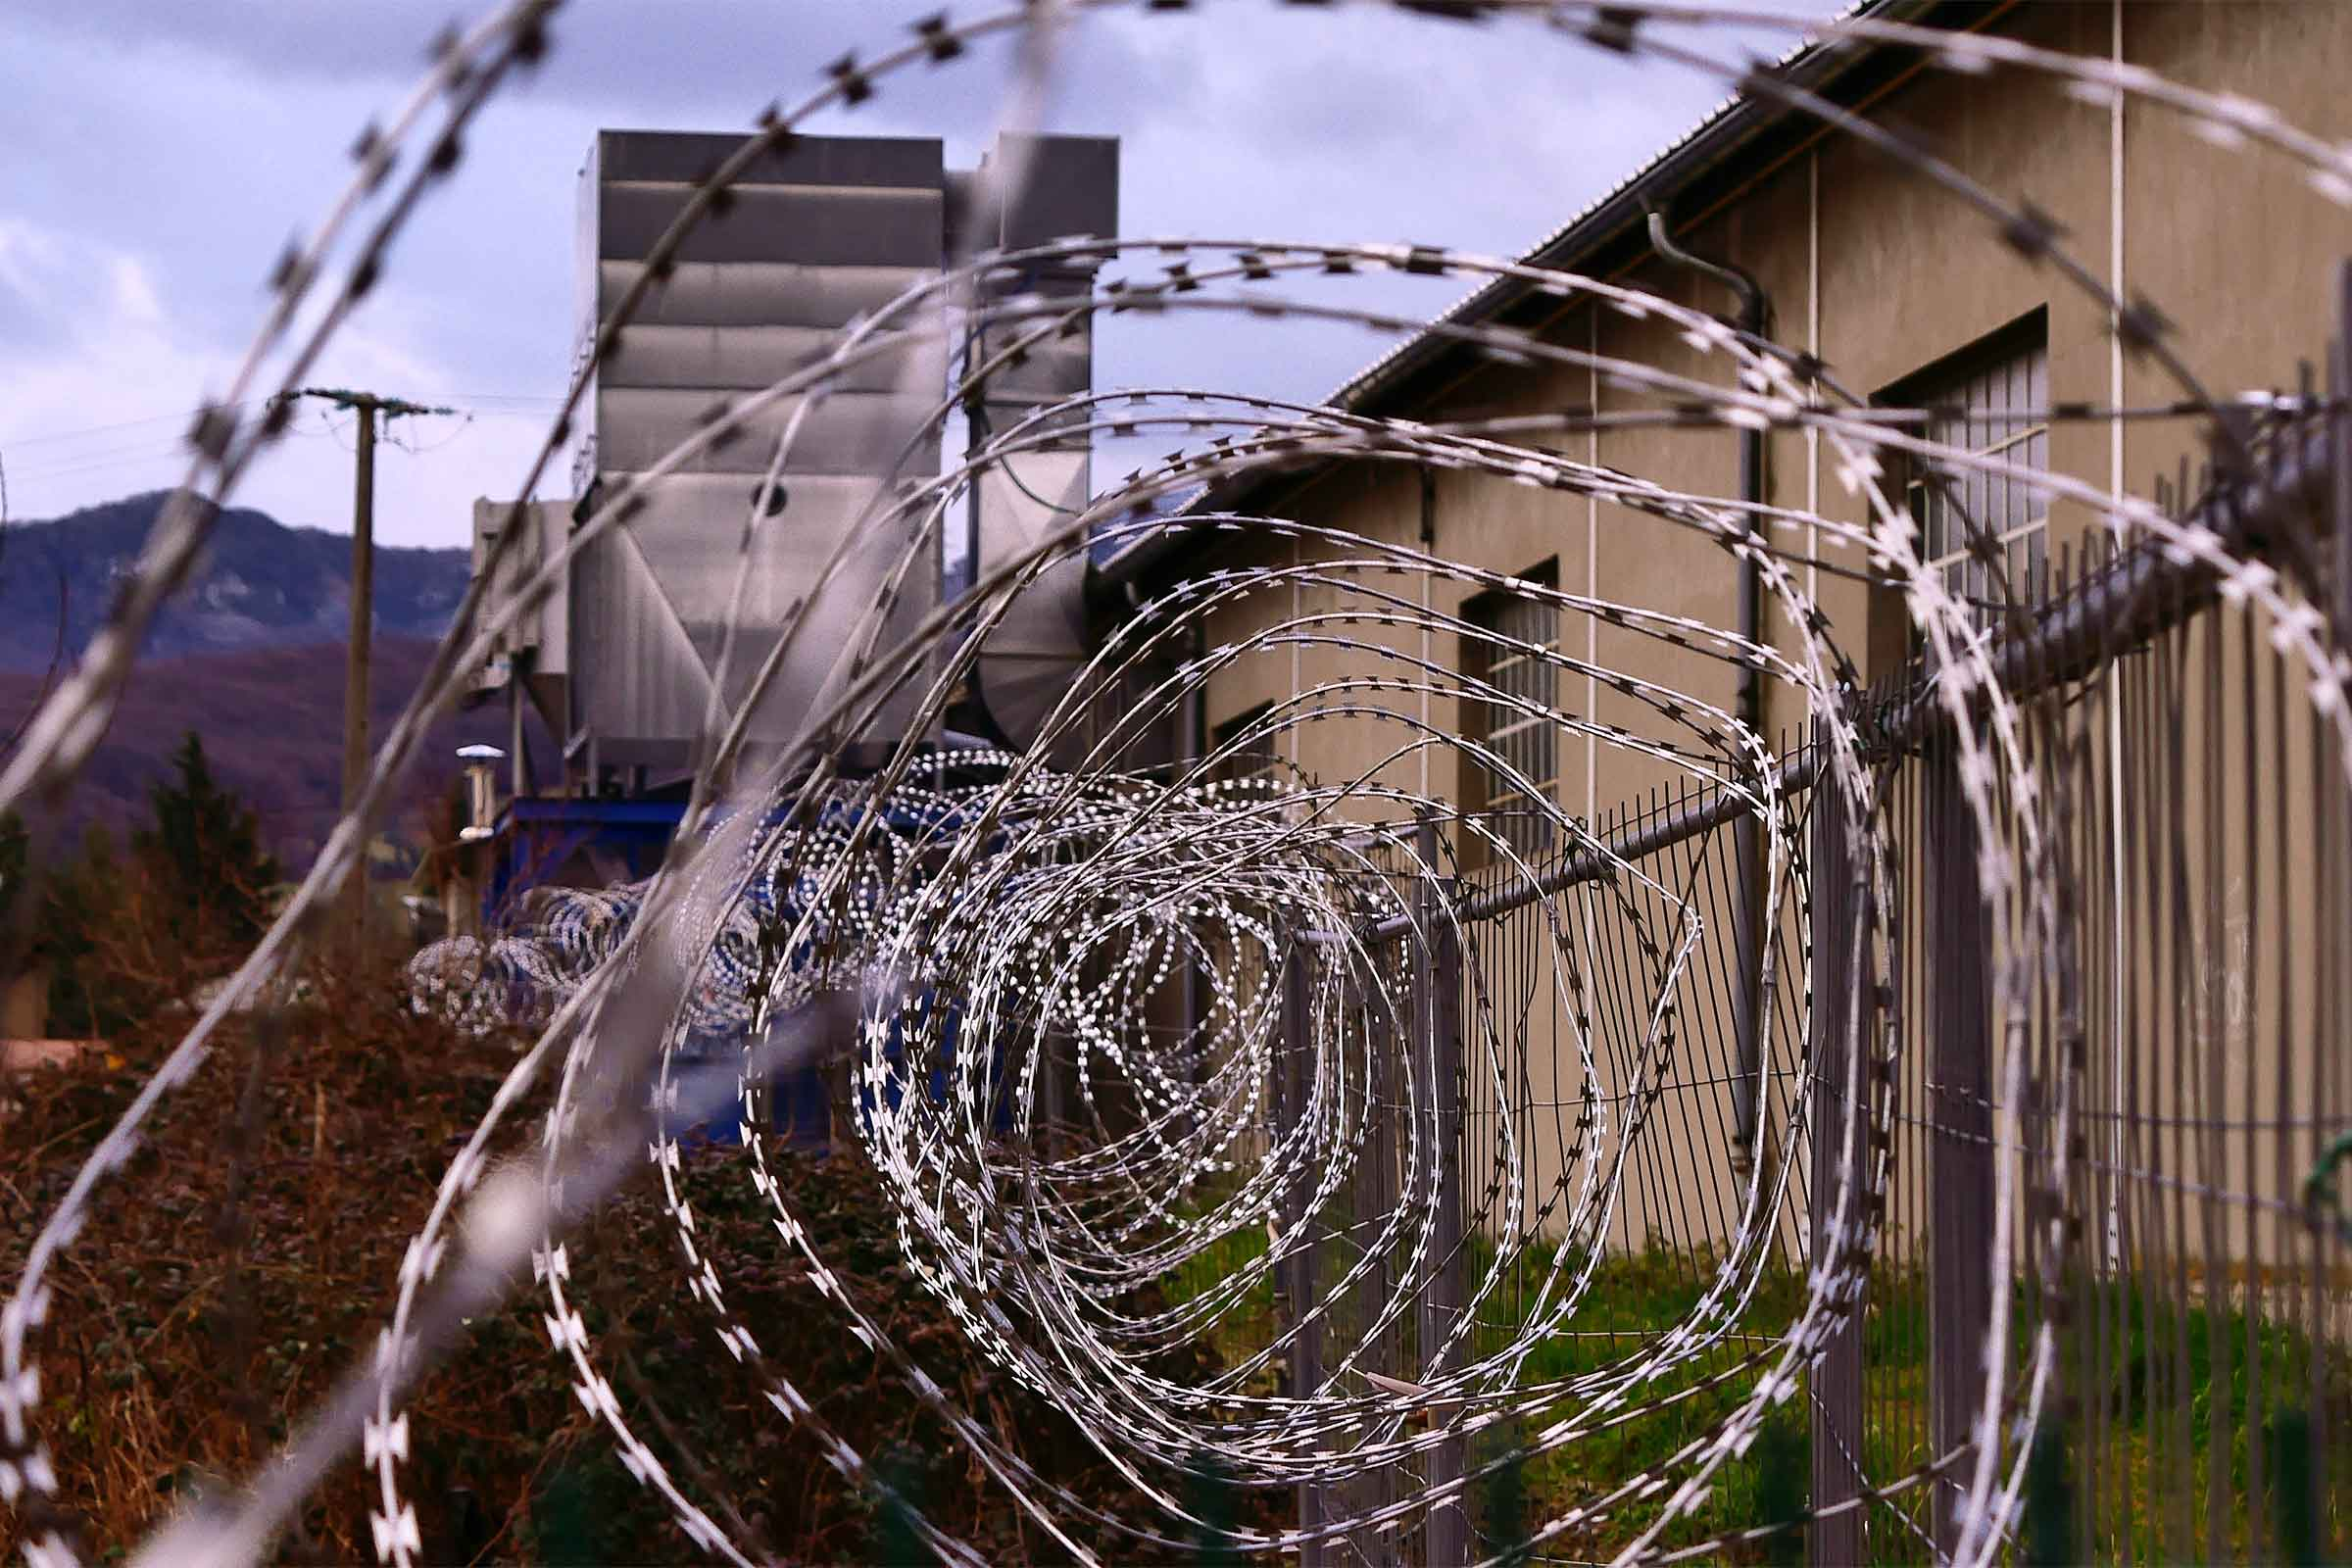 Razor wire in front of a prison building